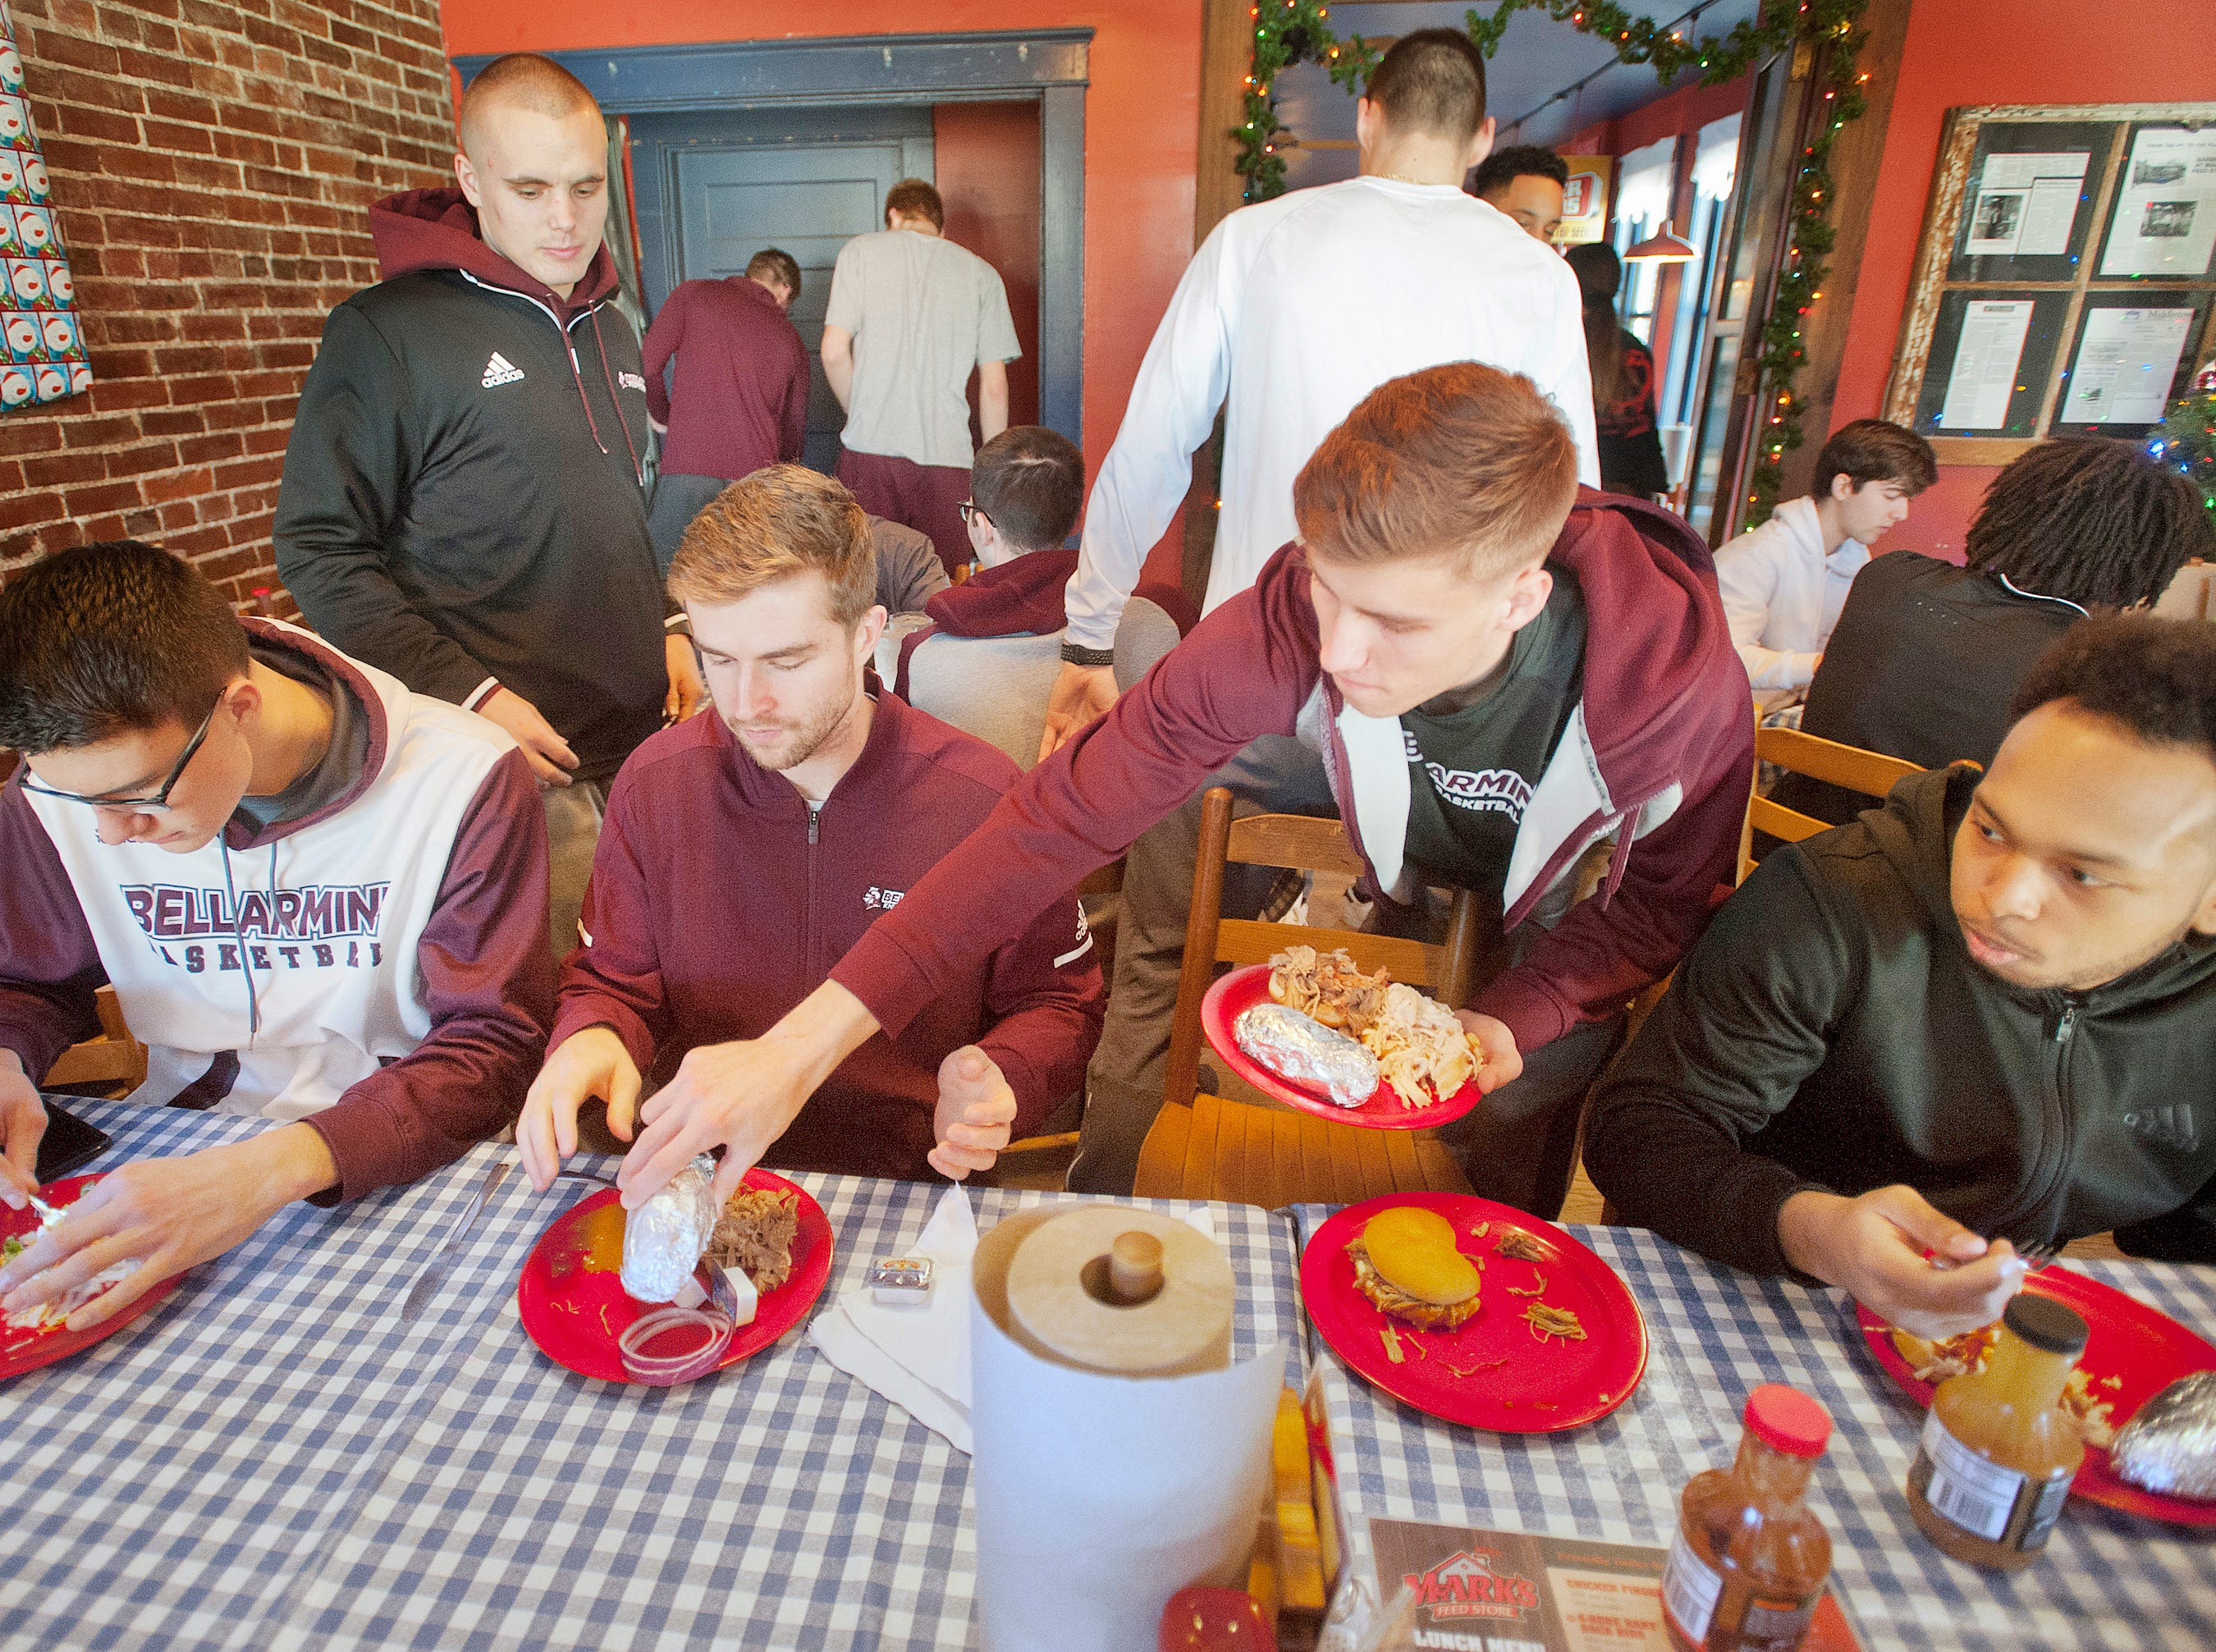 Bellarmine guard Juston Betz, center right, puts a baked potato on the plate of teammate forward Skyler Hunter, center left. The team was eating together at Mark's Feed Store on Bardstown Road.14December 2018